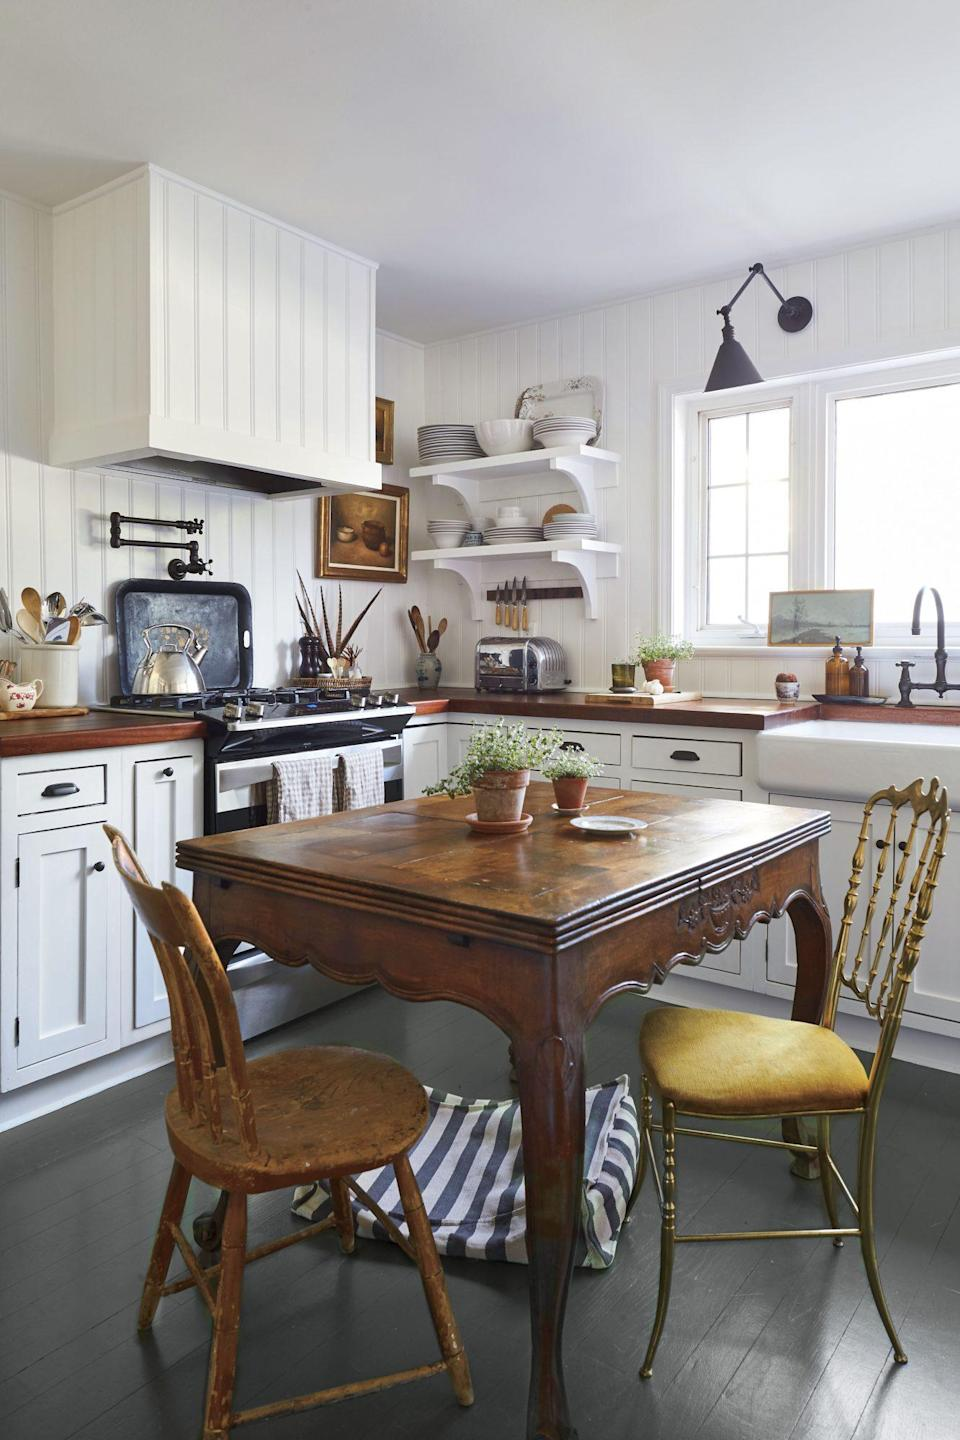 """<p>Designer Olivia Brock worked with Hanna Seabrook to give these hardwood floors instant character by painting them <a href=""""https://www.benjaminmoore.com/en-us/color-overview/find-your-color/color/cw-85/randolph-gray?color=CW-85"""" rel=""""nofollow noopener"""" target=""""_blank"""" data-ylk=""""slk:this deep green-gray"""" class=""""link rapid-noclick-resp"""">this deep green-gray</a>, topped with an exterior Arborcoat finish for durability. See more <a href=""""https://www.southernliving.com/home/before-after/first-home-decor-ideas"""" rel=""""nofollow noopener"""" target=""""_blank"""" data-ylk=""""slk:here"""" class=""""link rapid-noclick-resp"""">here</a>.</p>"""